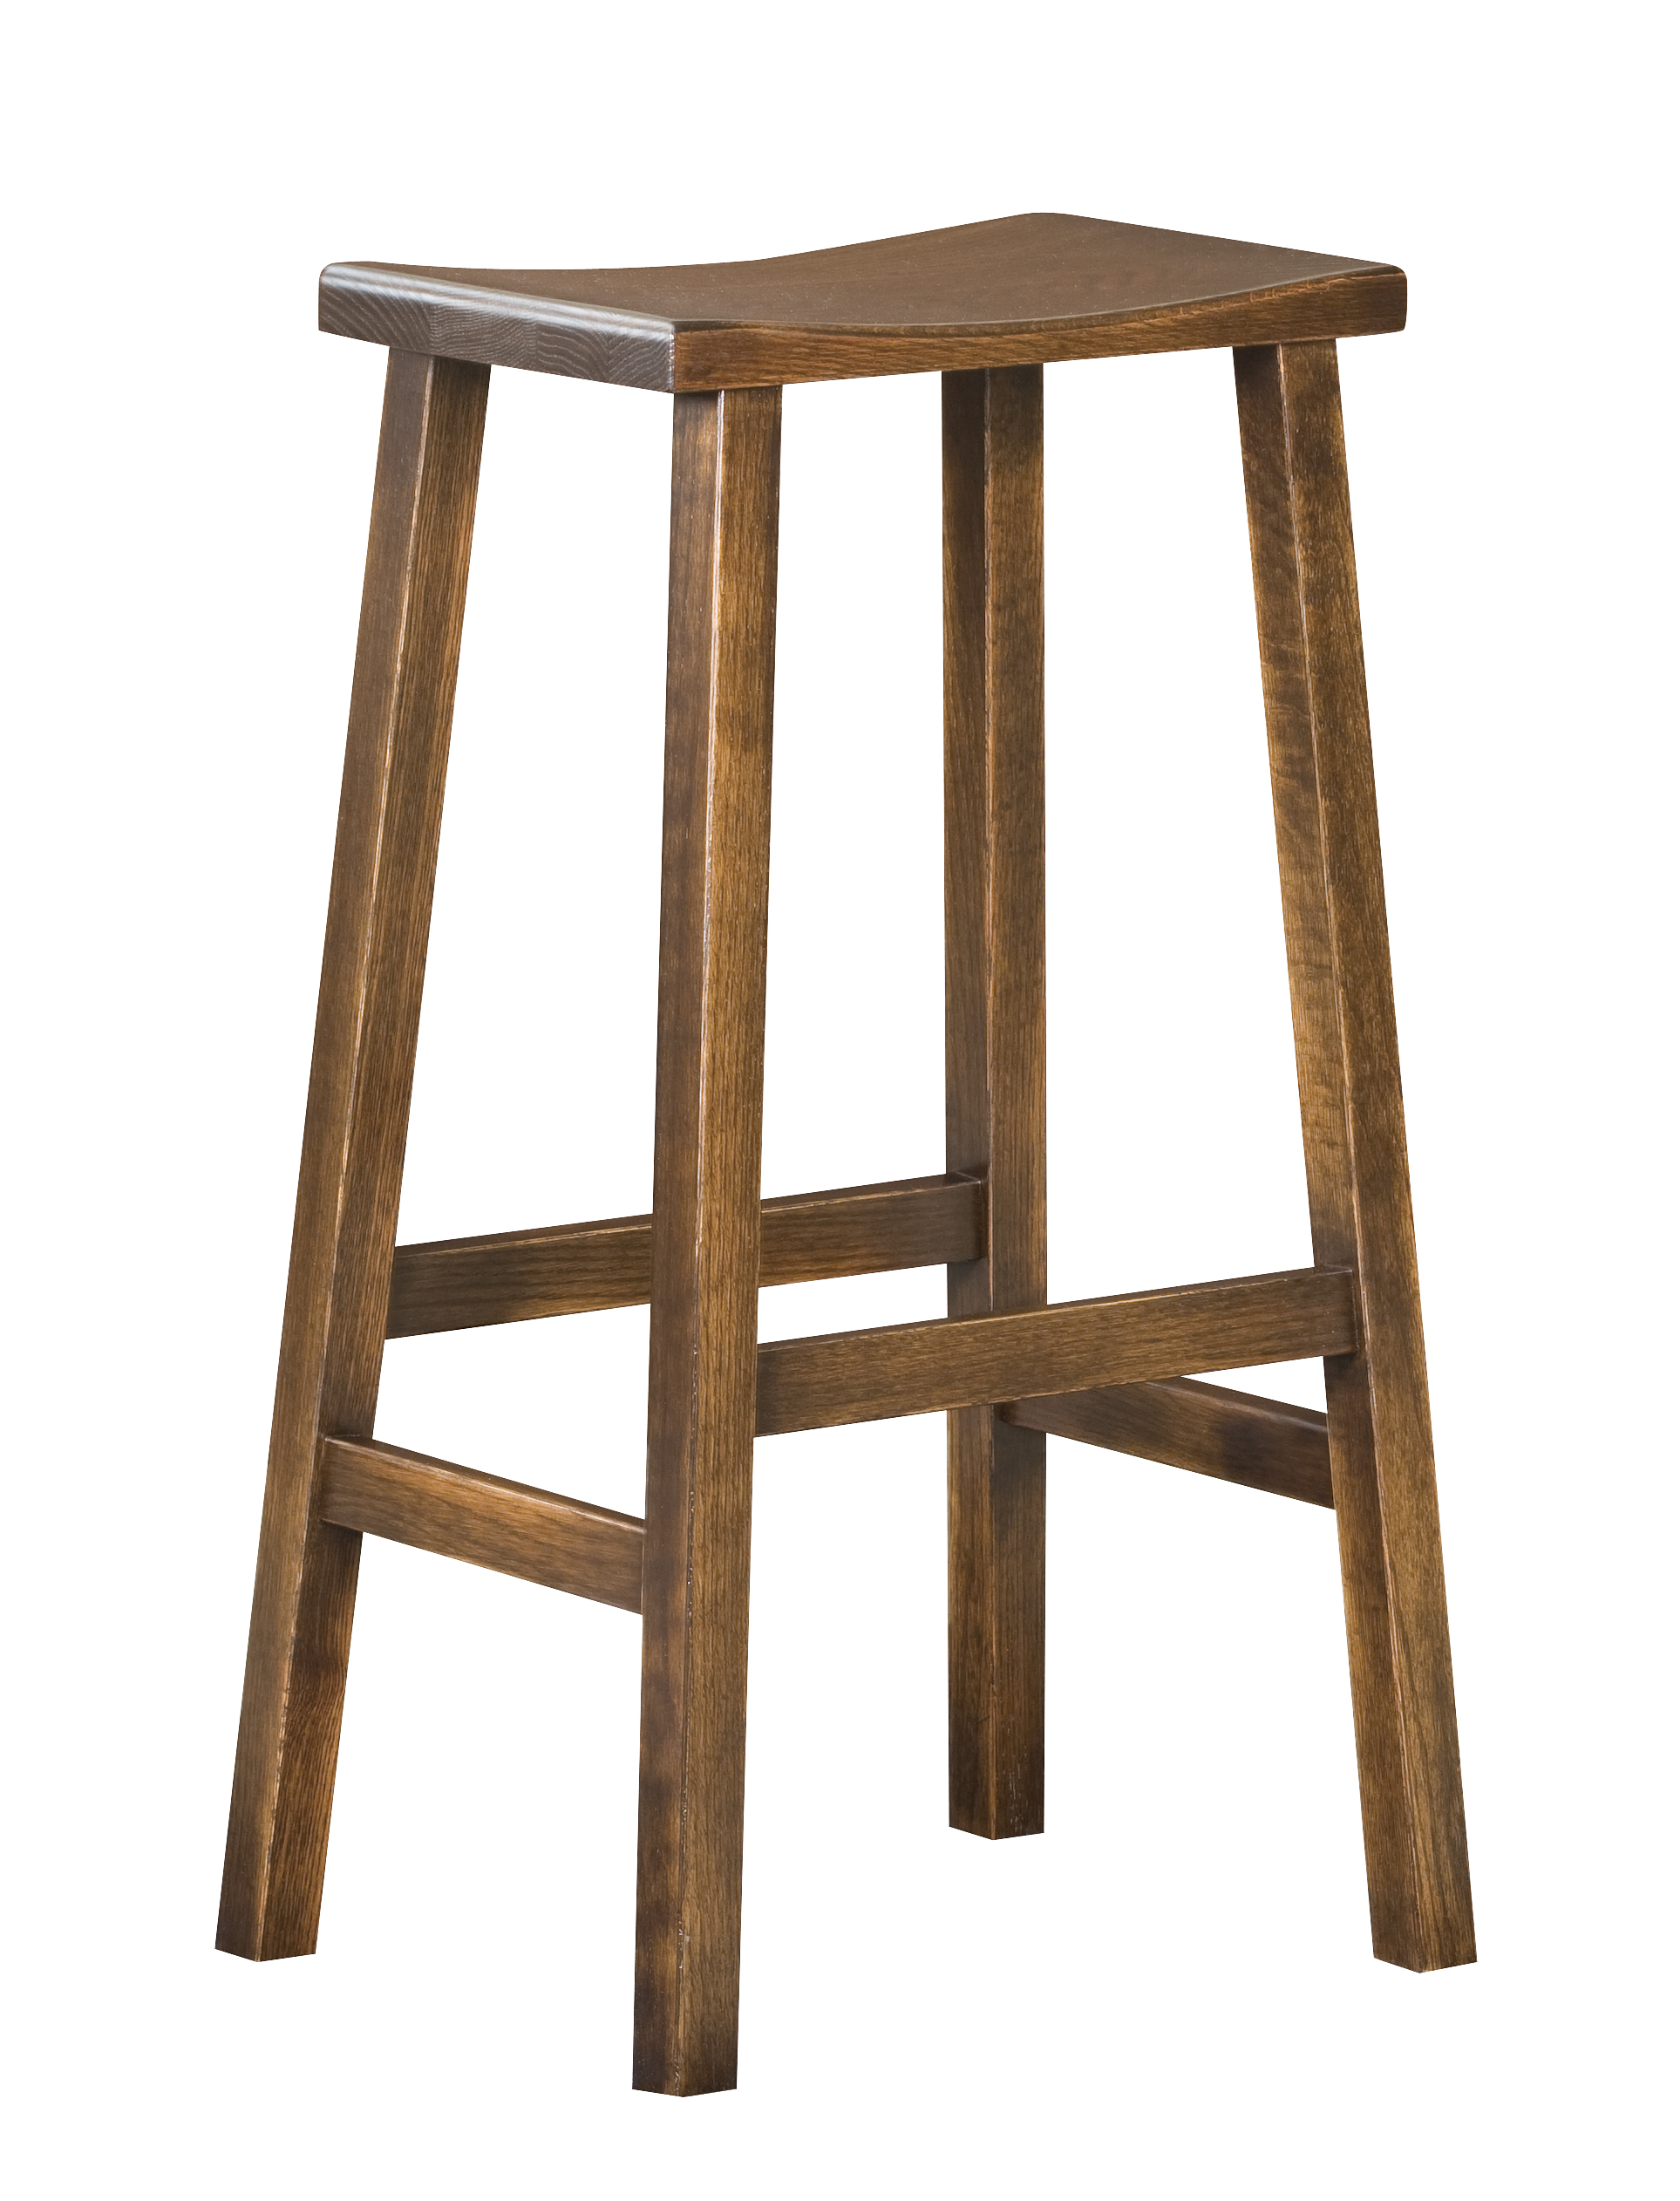 Contemporary 30 Quot Bar Stool Peaceful Valley Amish Furniture